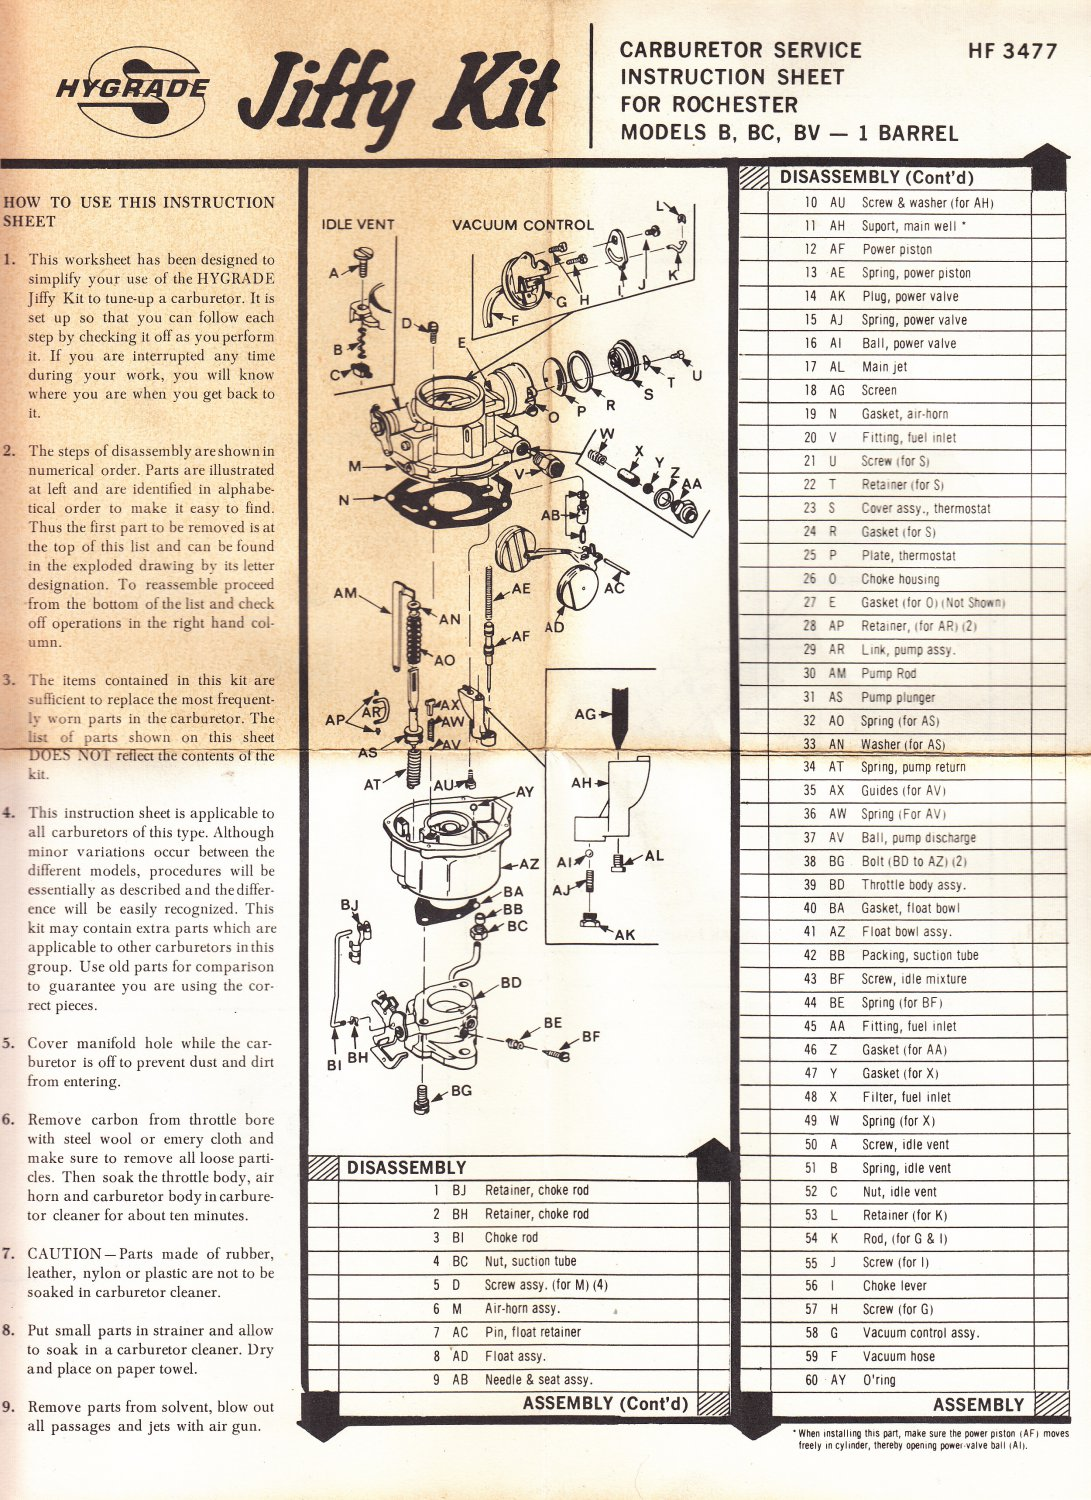 Carburetor instruction sheet Rochester model B BC BV - 1 barrel ...